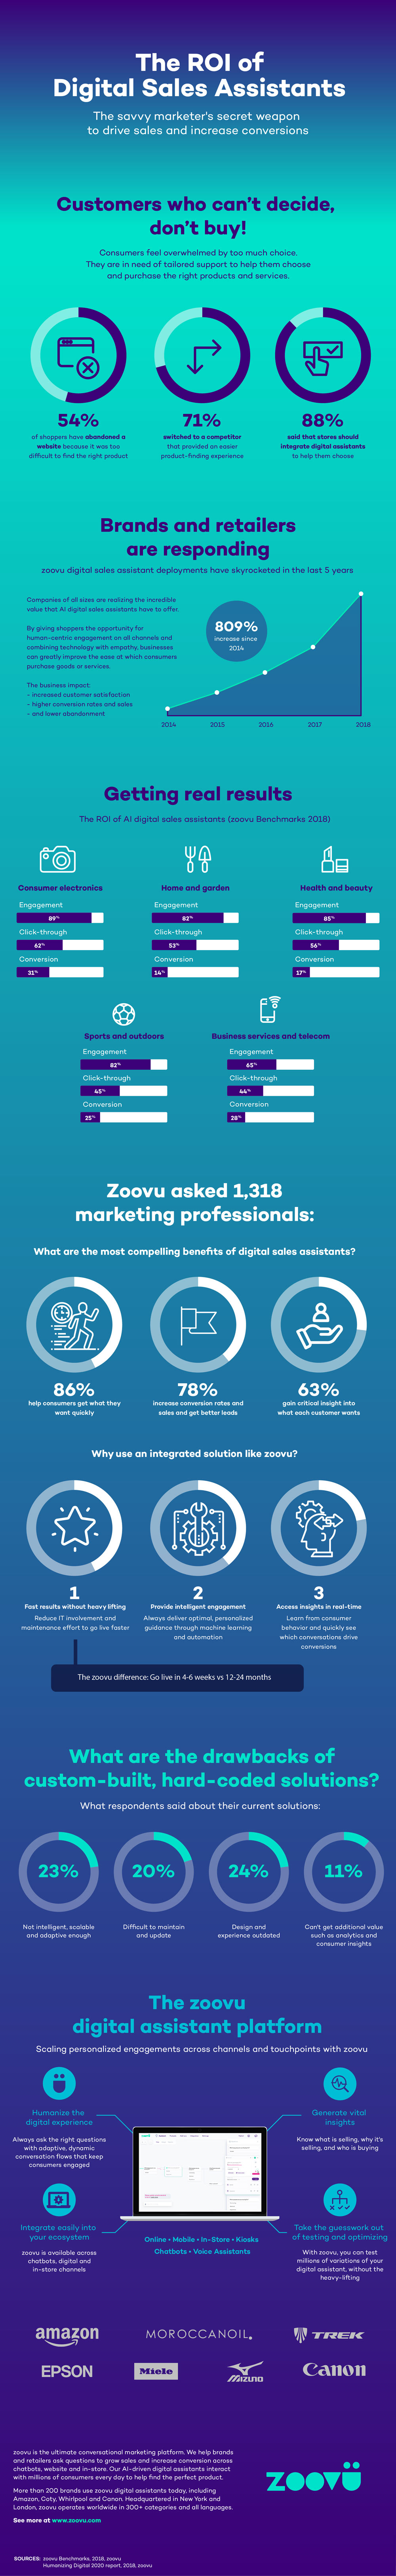 zoovu roi digital assistants